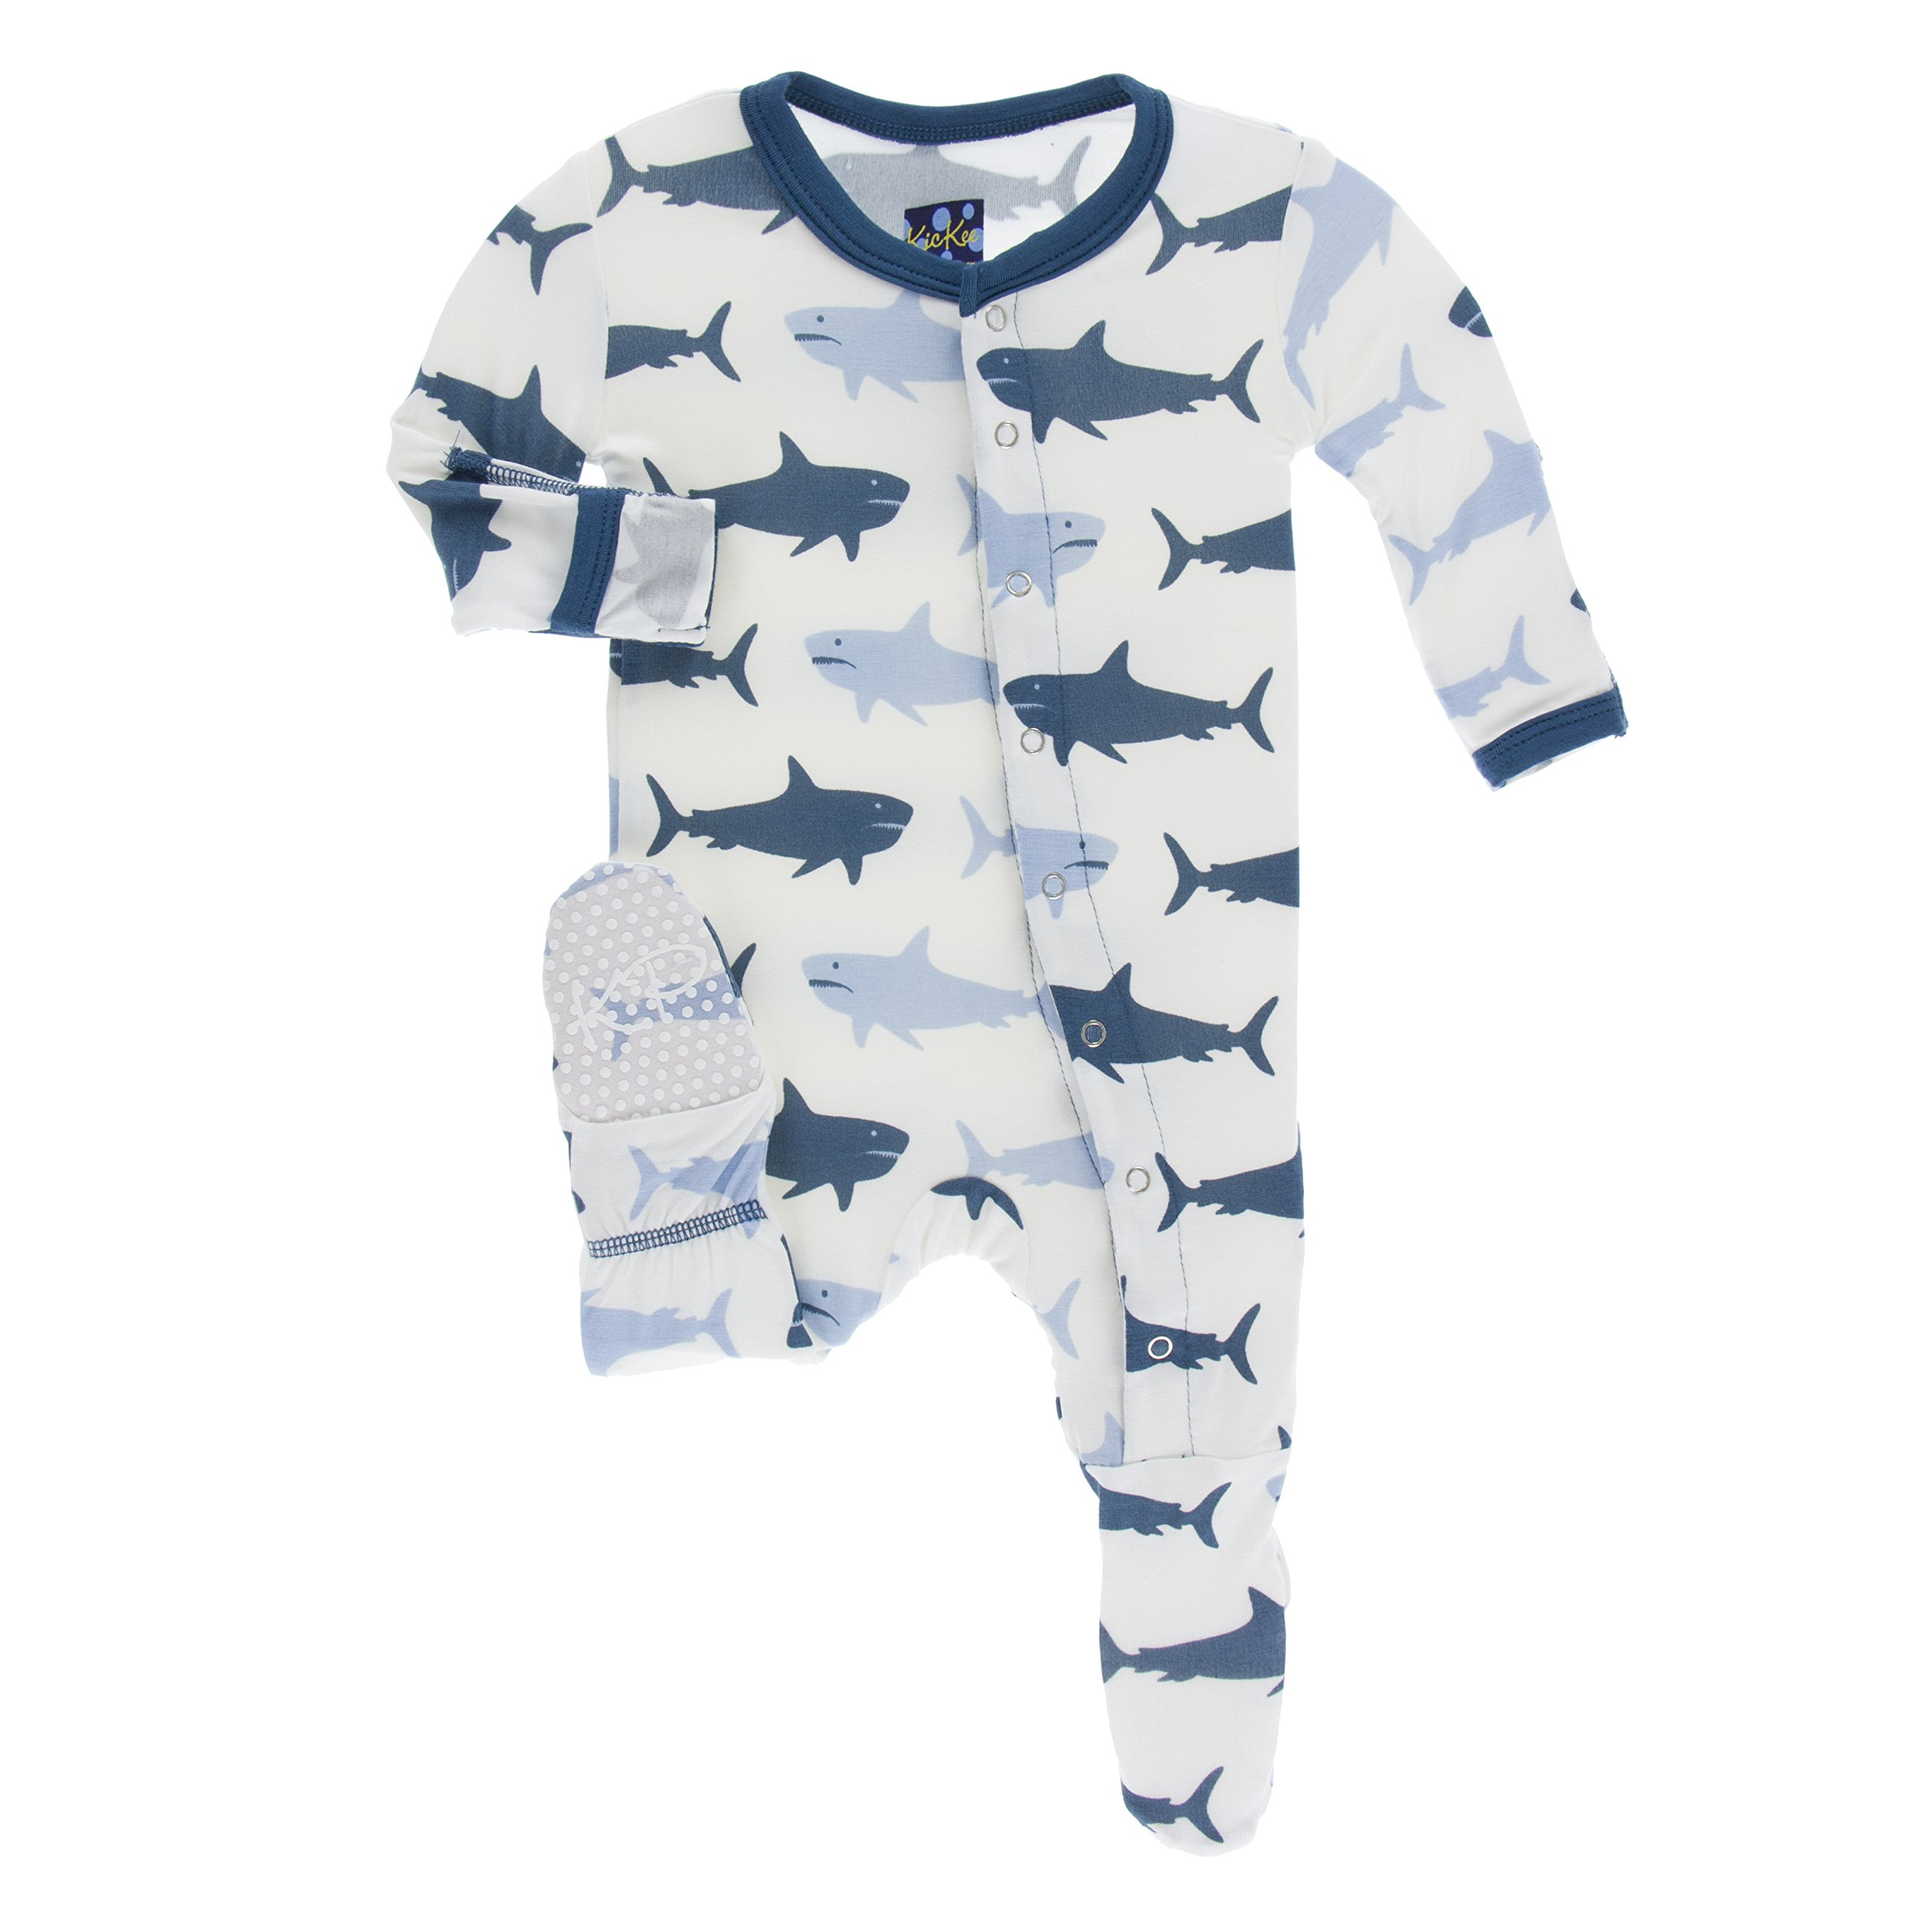 Kickee Pants Print Footie with Snaps in Natural Megalodon, 3T